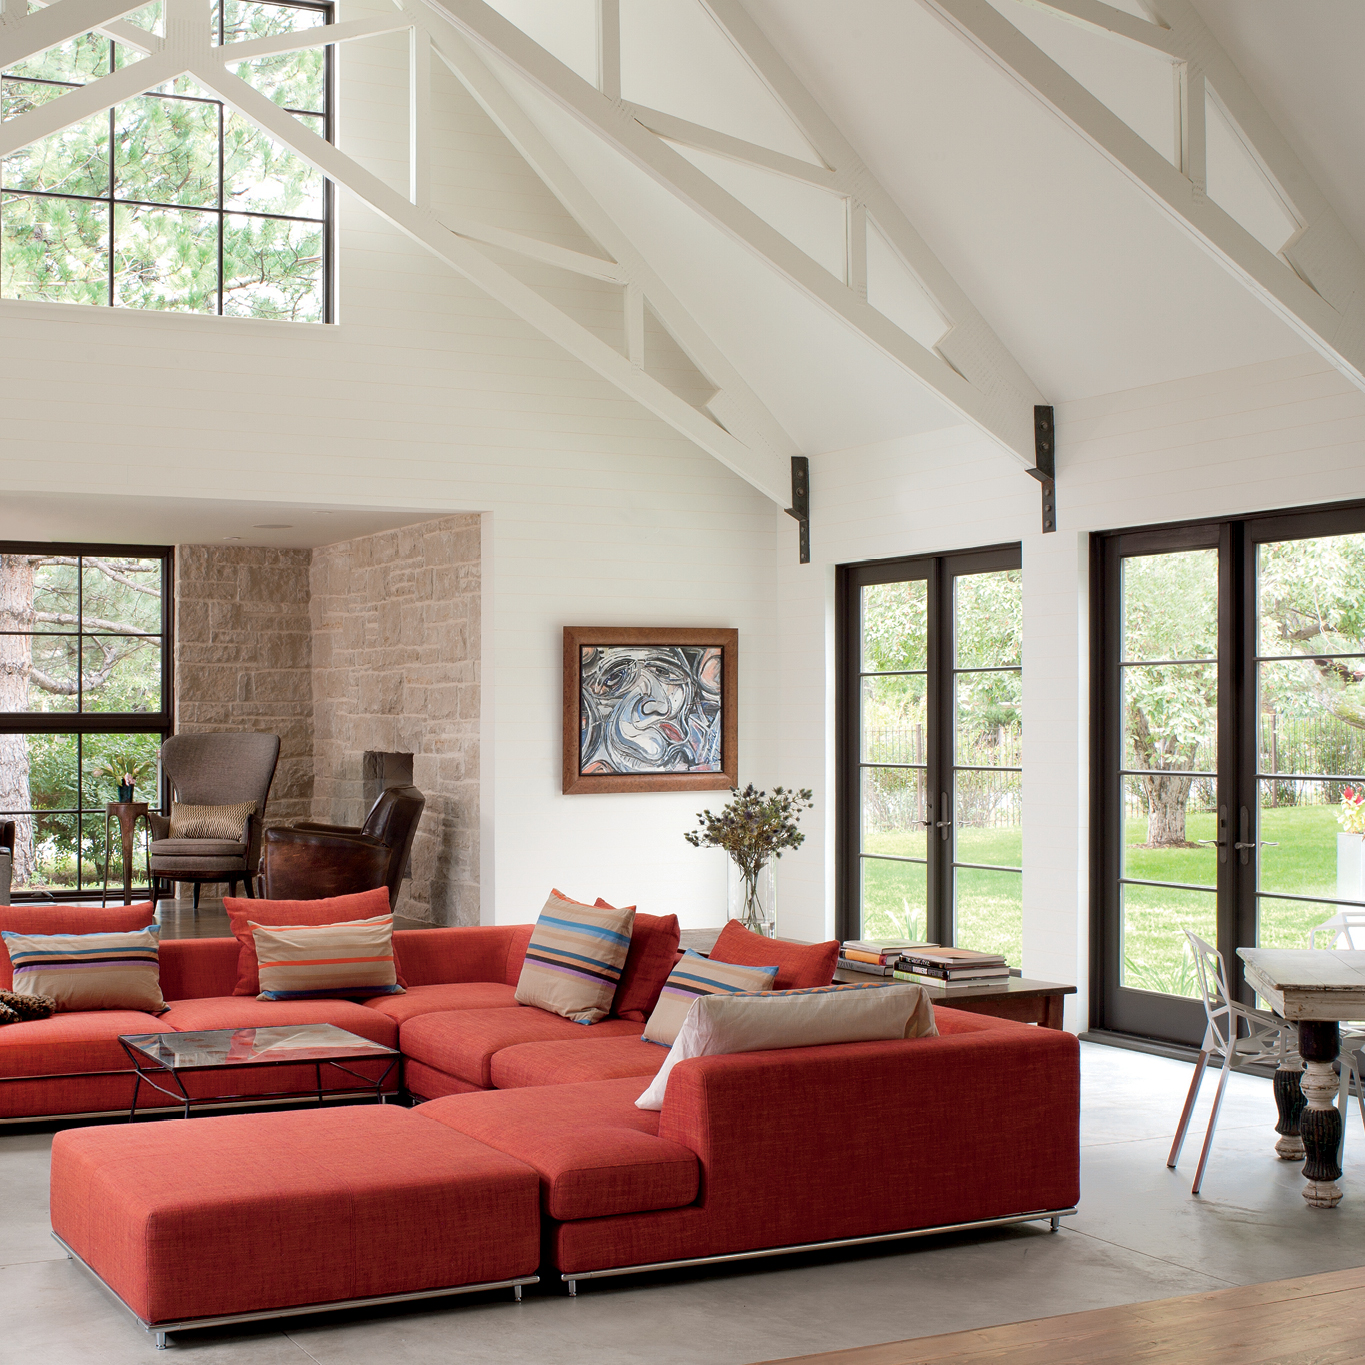 Marvin-Outswing-French-Door.jpg